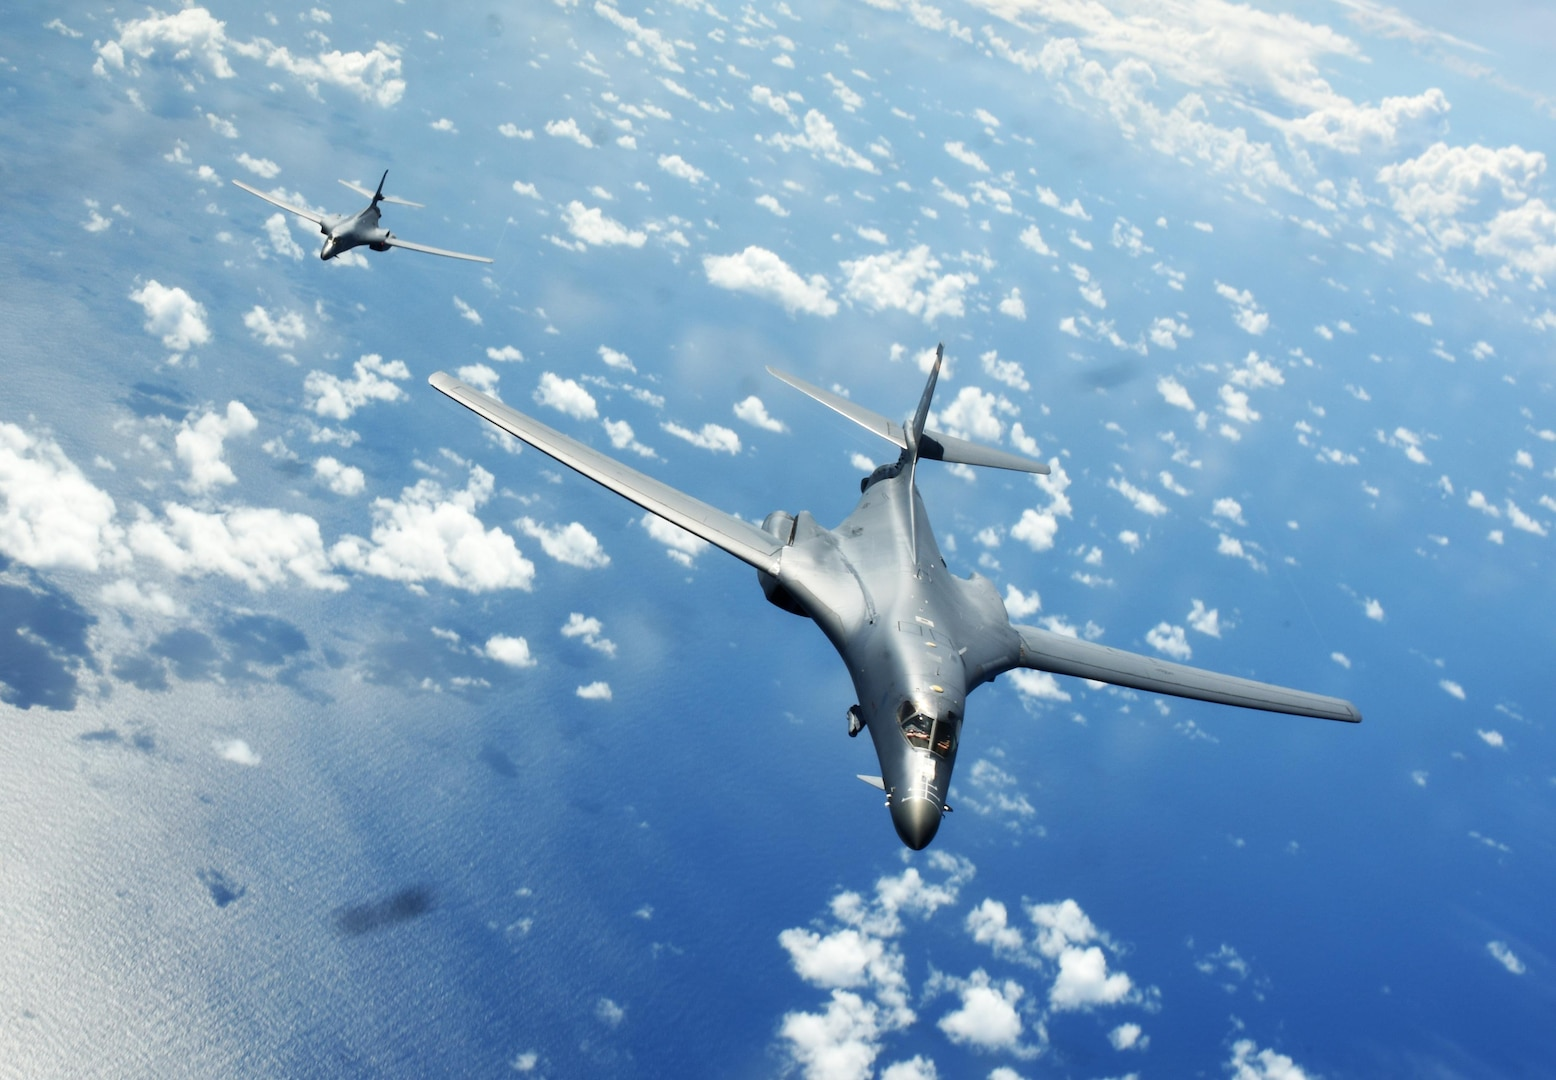 Two U.S. Air Force B-1B Lancers assigned to 9th Expeditionary Bomb Squadron, deployed from Dyess Air Force Base, Texas, fly 10-hour mission from Guam through South China Sea, operating with USS Sterett, June 8, 2017 (U.S. Air Force/Richard P. Ebensberger)